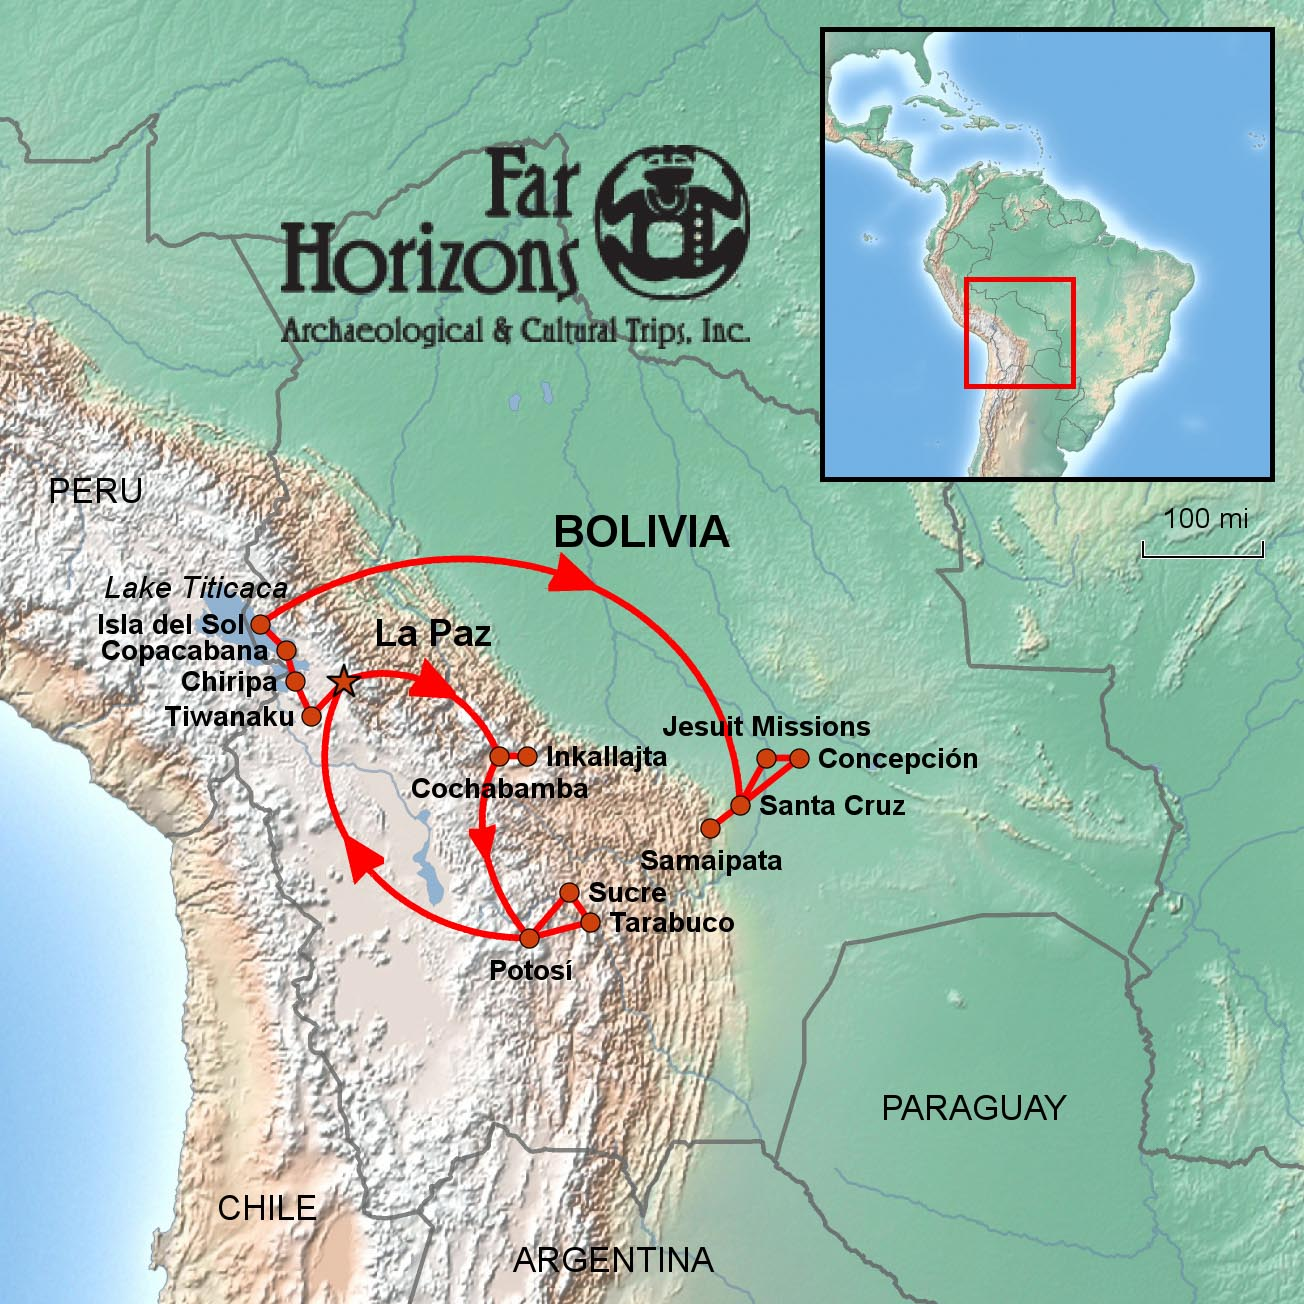 Archaeology and Culture of Bolivia Tour